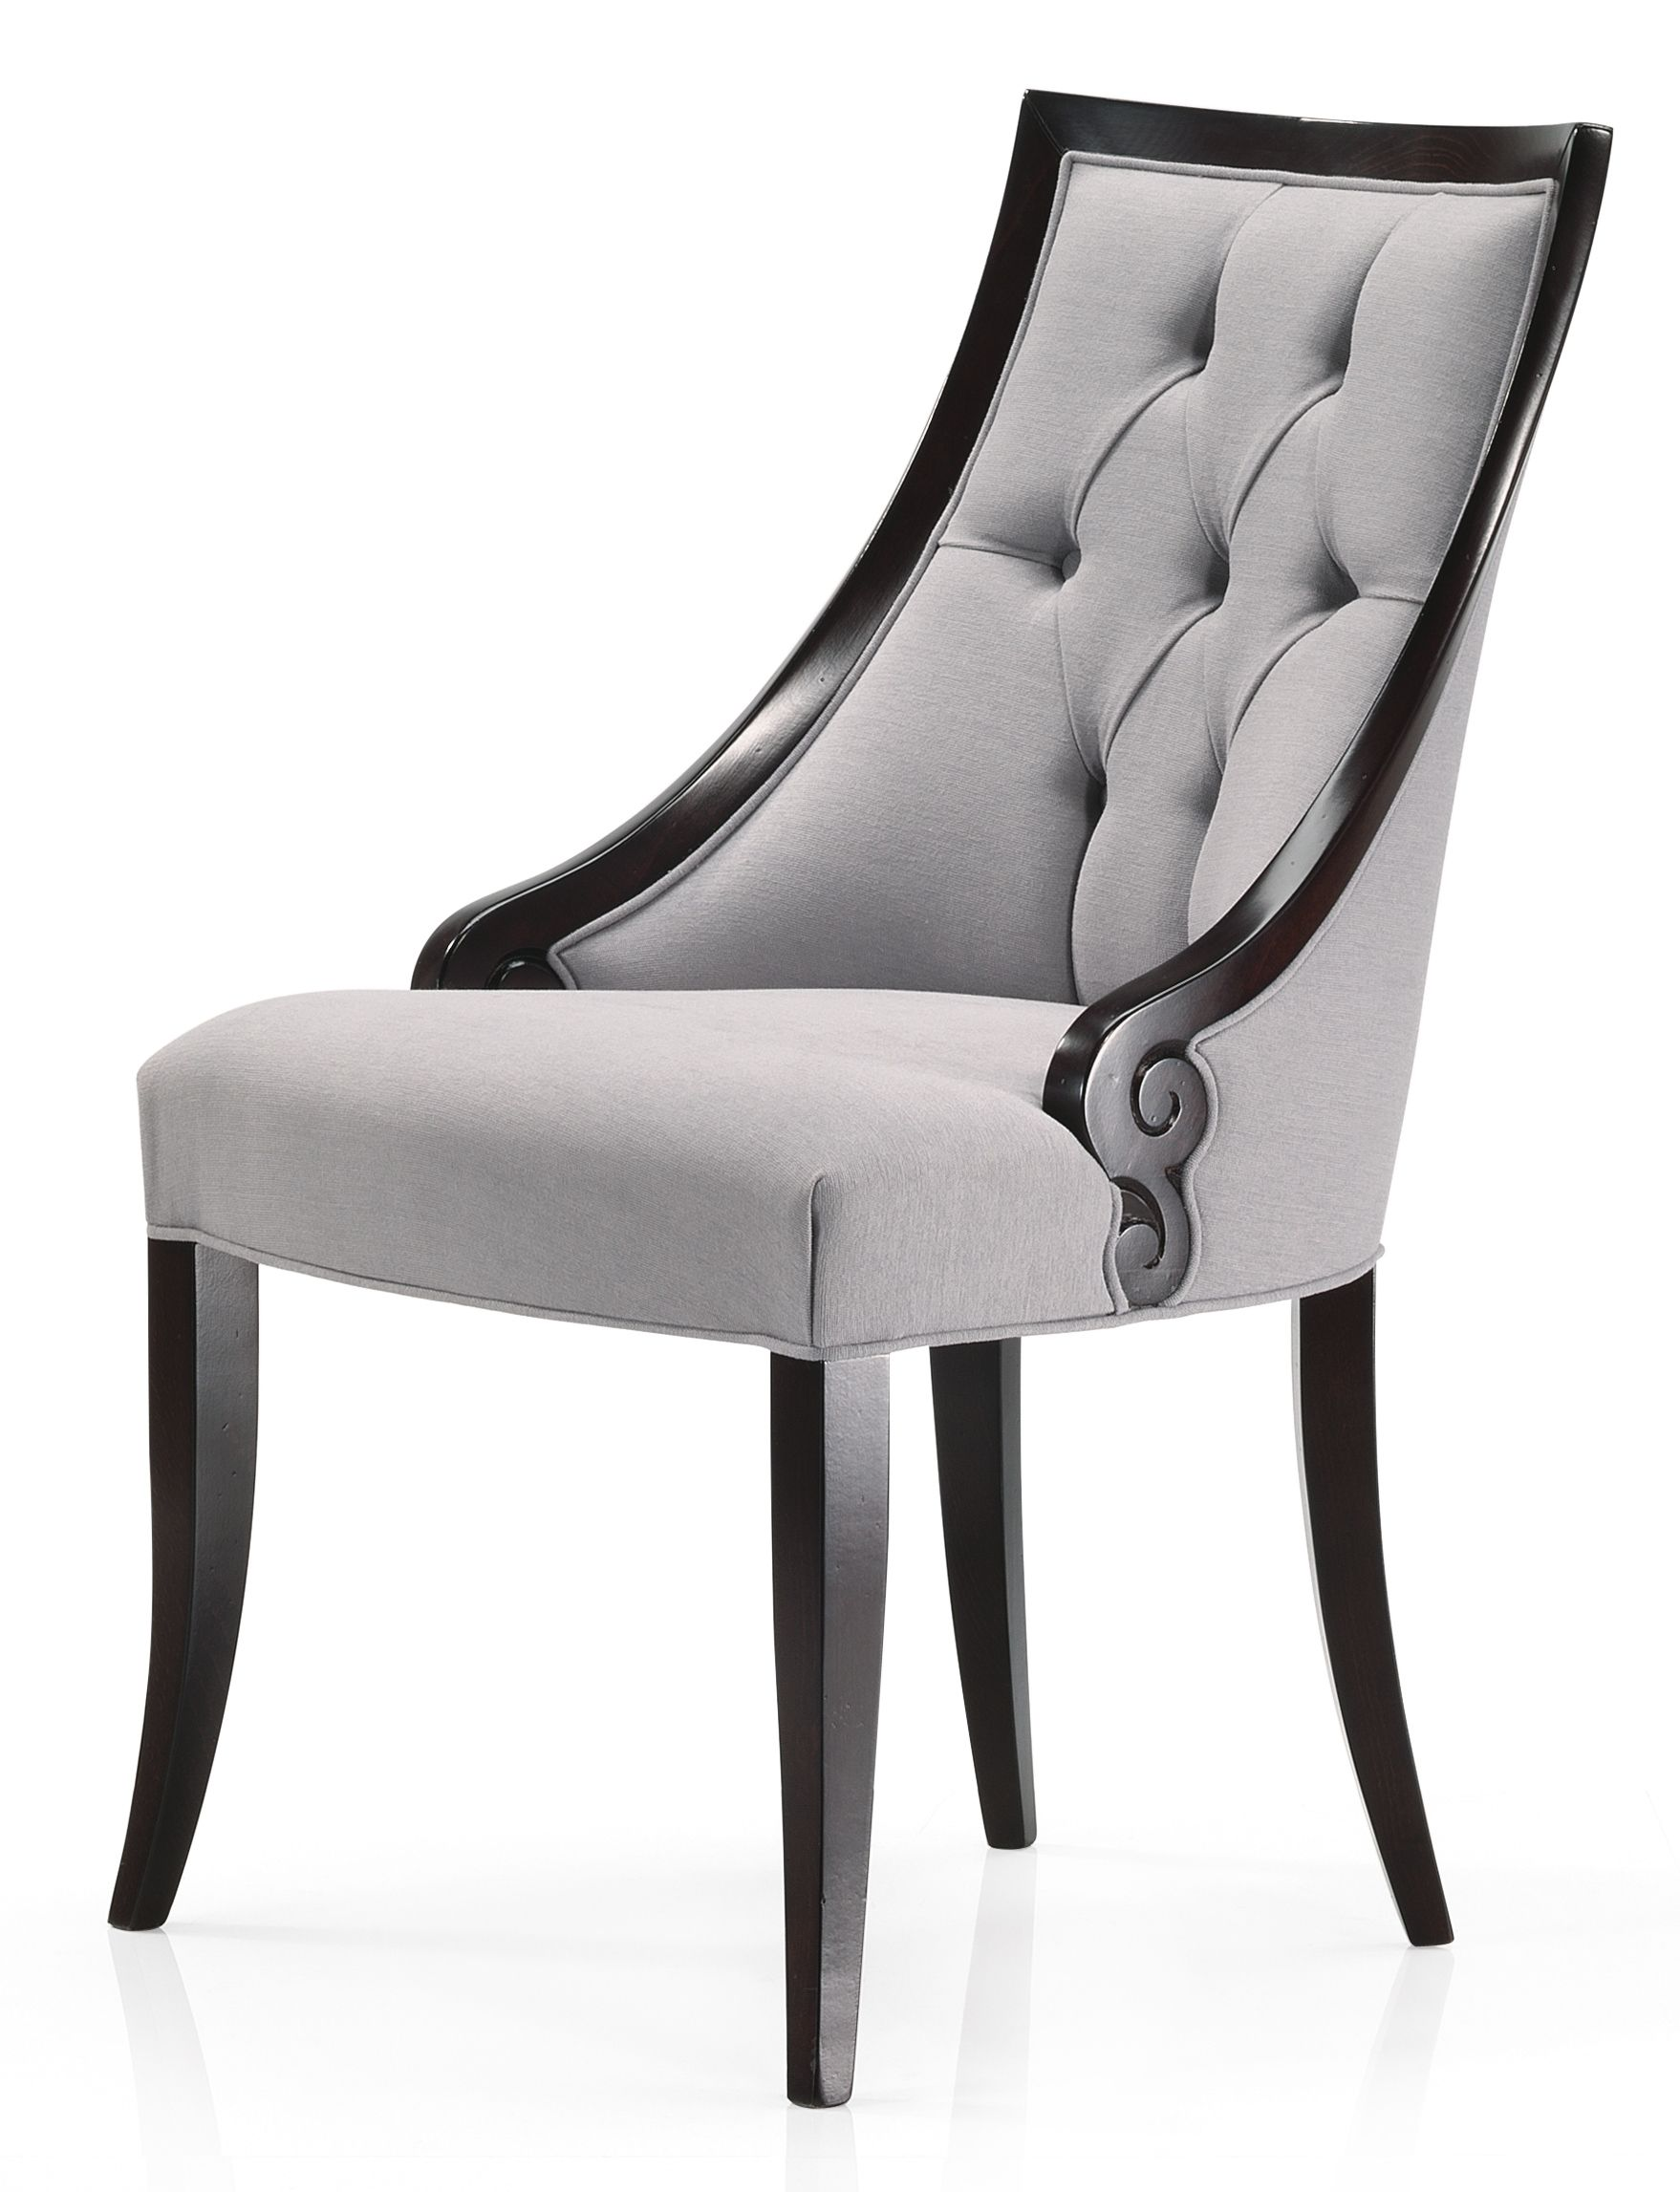 Interior Decor Cly Upholstered Dining Chairs For Room